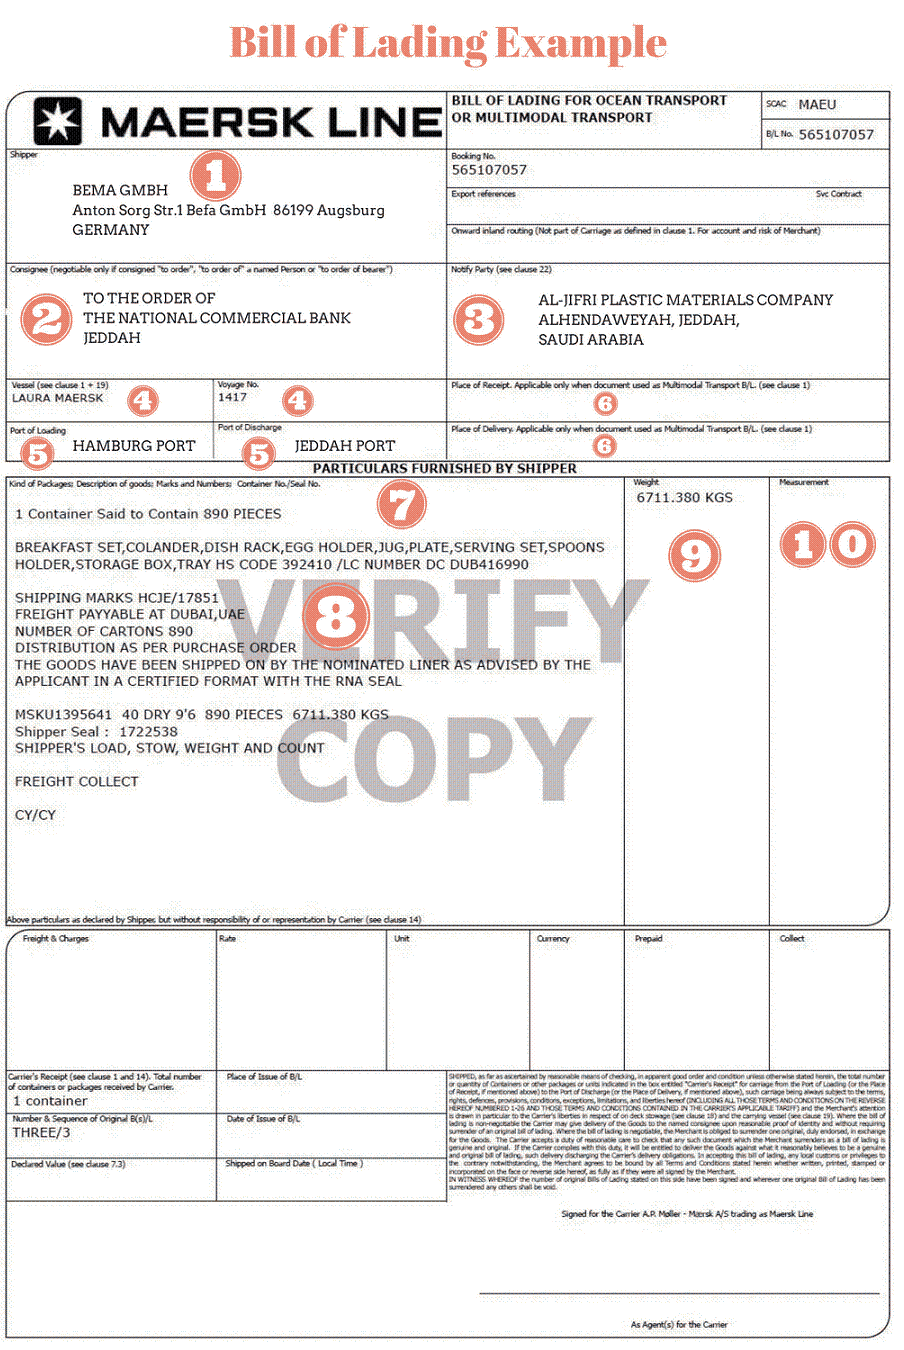 bill of lading example bill of lading template excel bill of